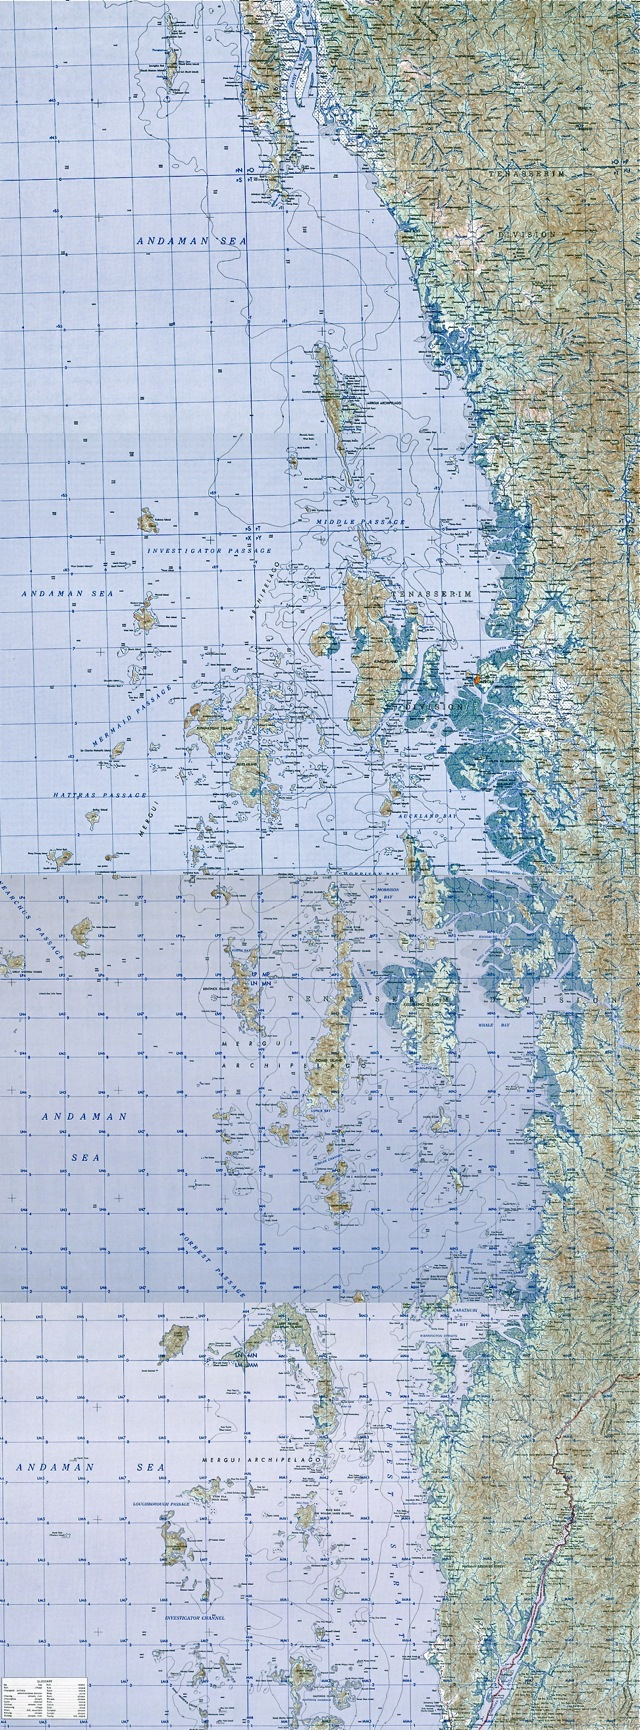 Mergui Archipelago Map